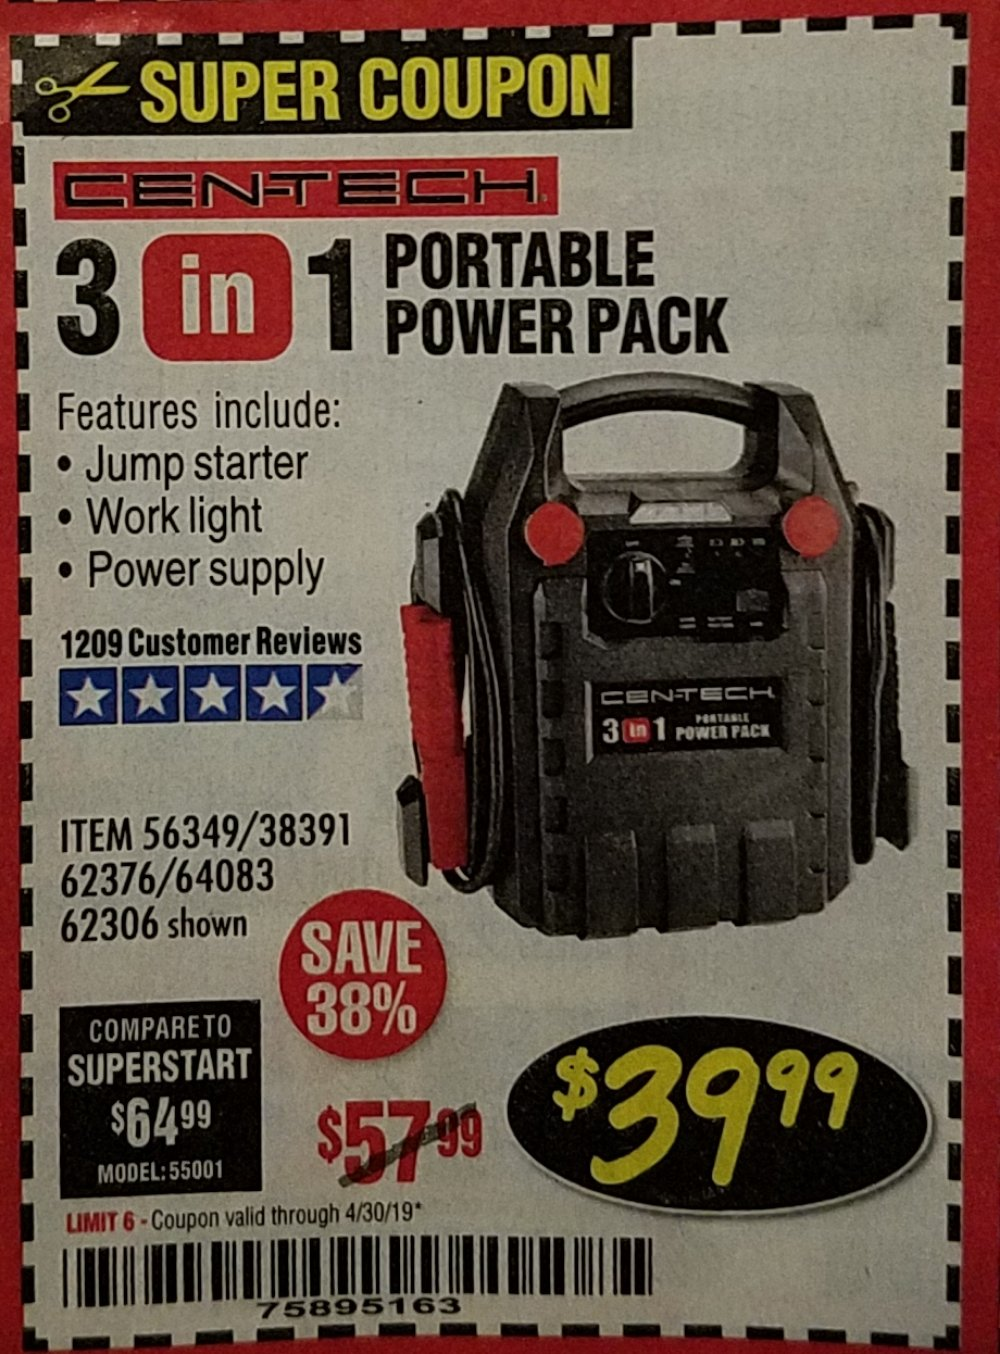 Harbor Freight Coupon, HF Coupons - 3 In 1 Portable Power Pack